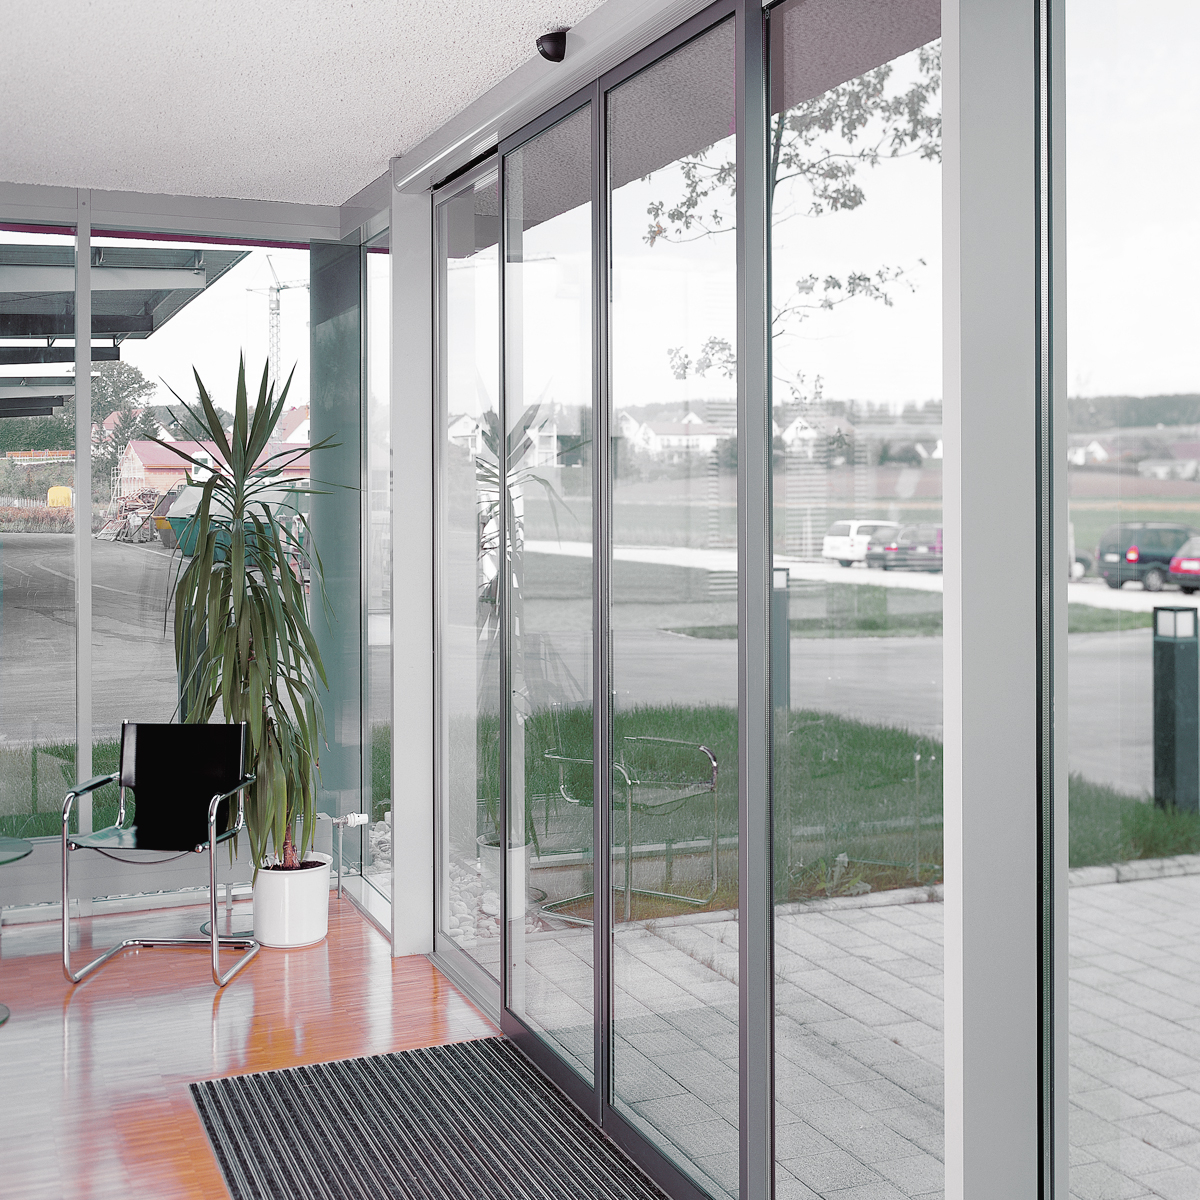 Dorma st flex automatic sliding door system with slender